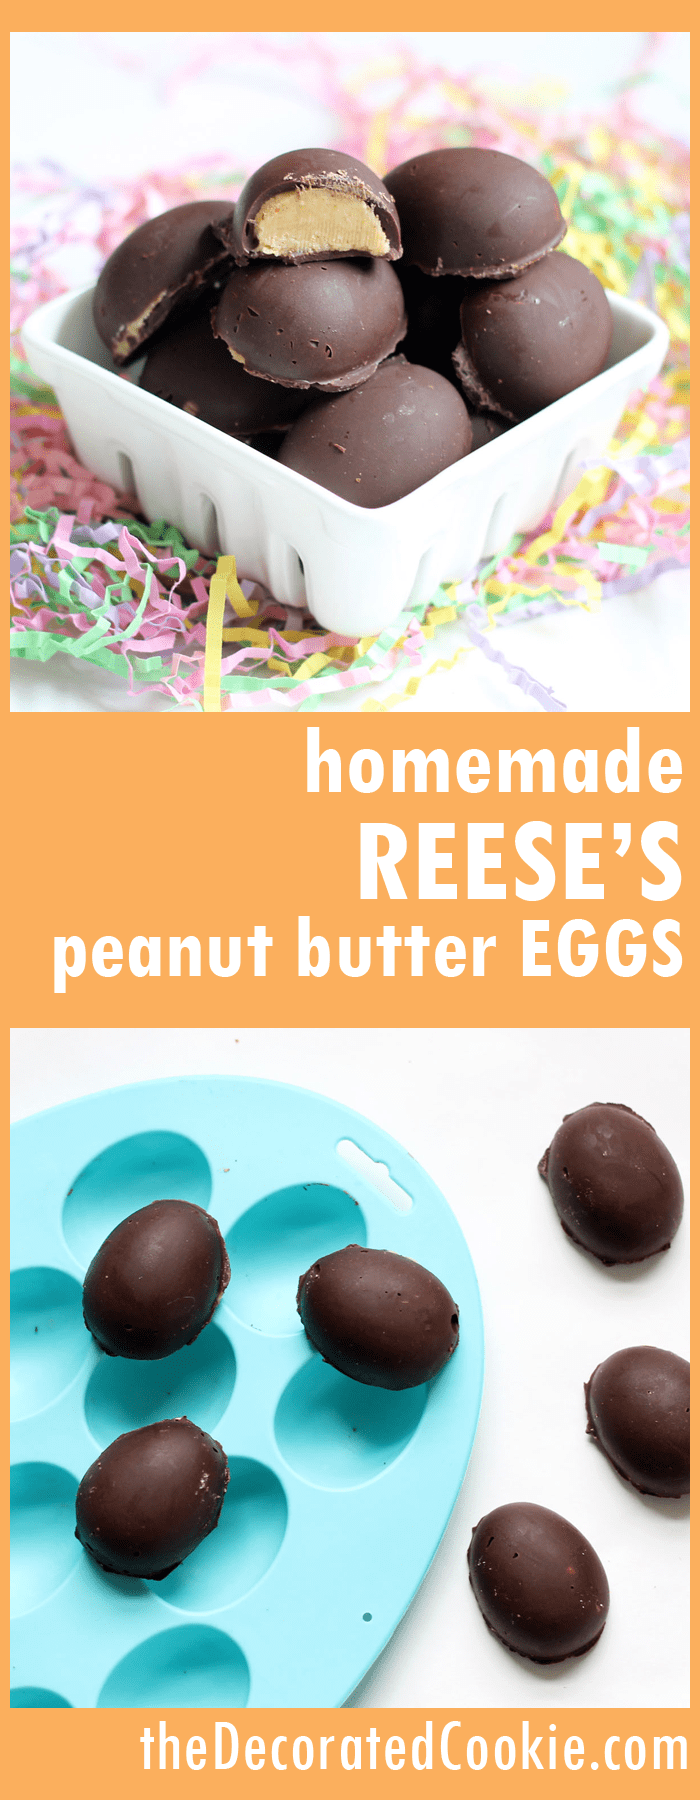 homemade chocolate peanut butter eggs -- copycat Reese's peanut butter eggs